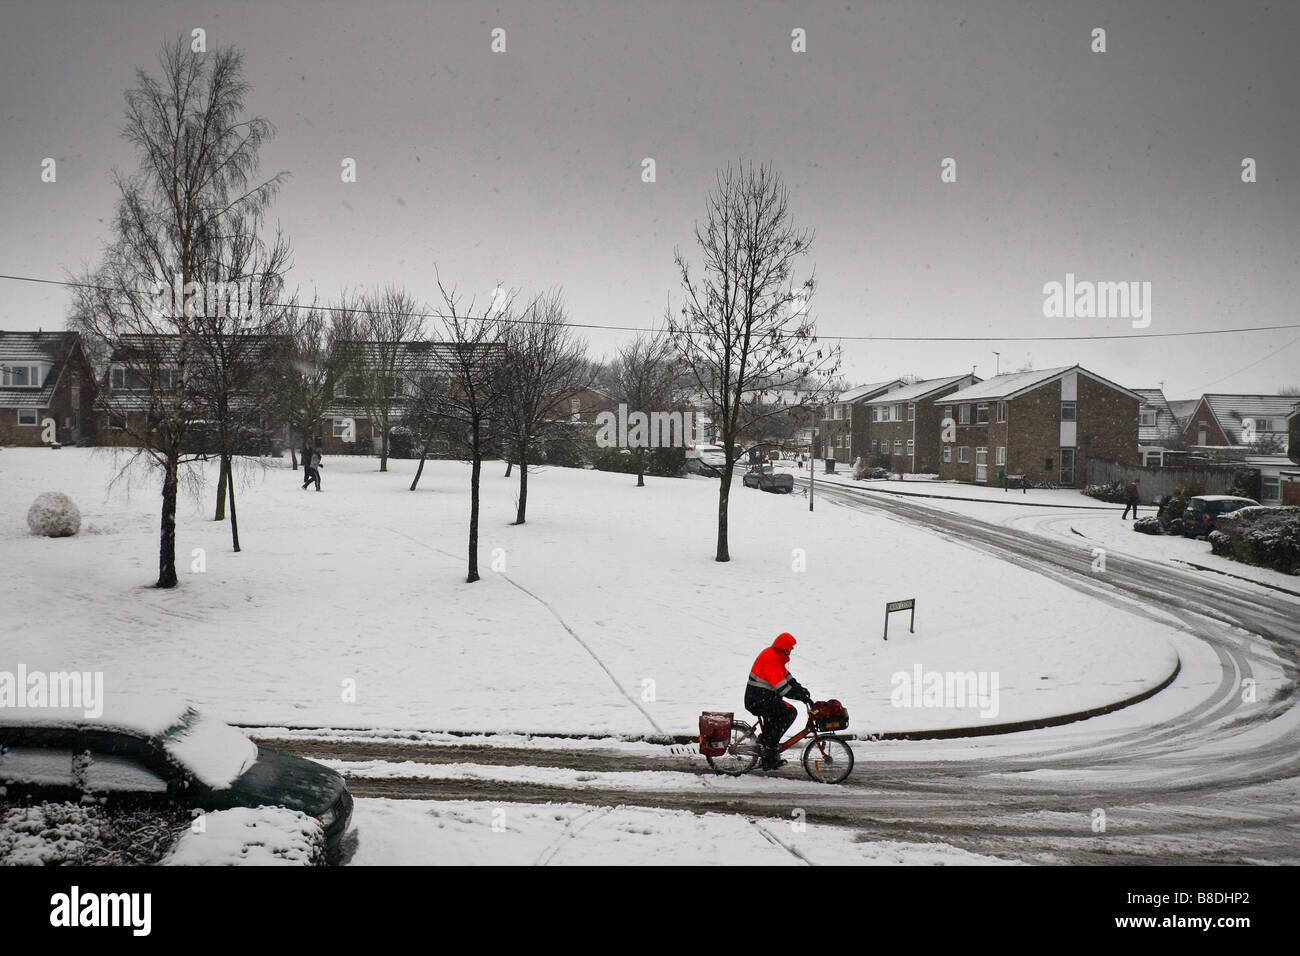 Postman in the snow - Stock Image